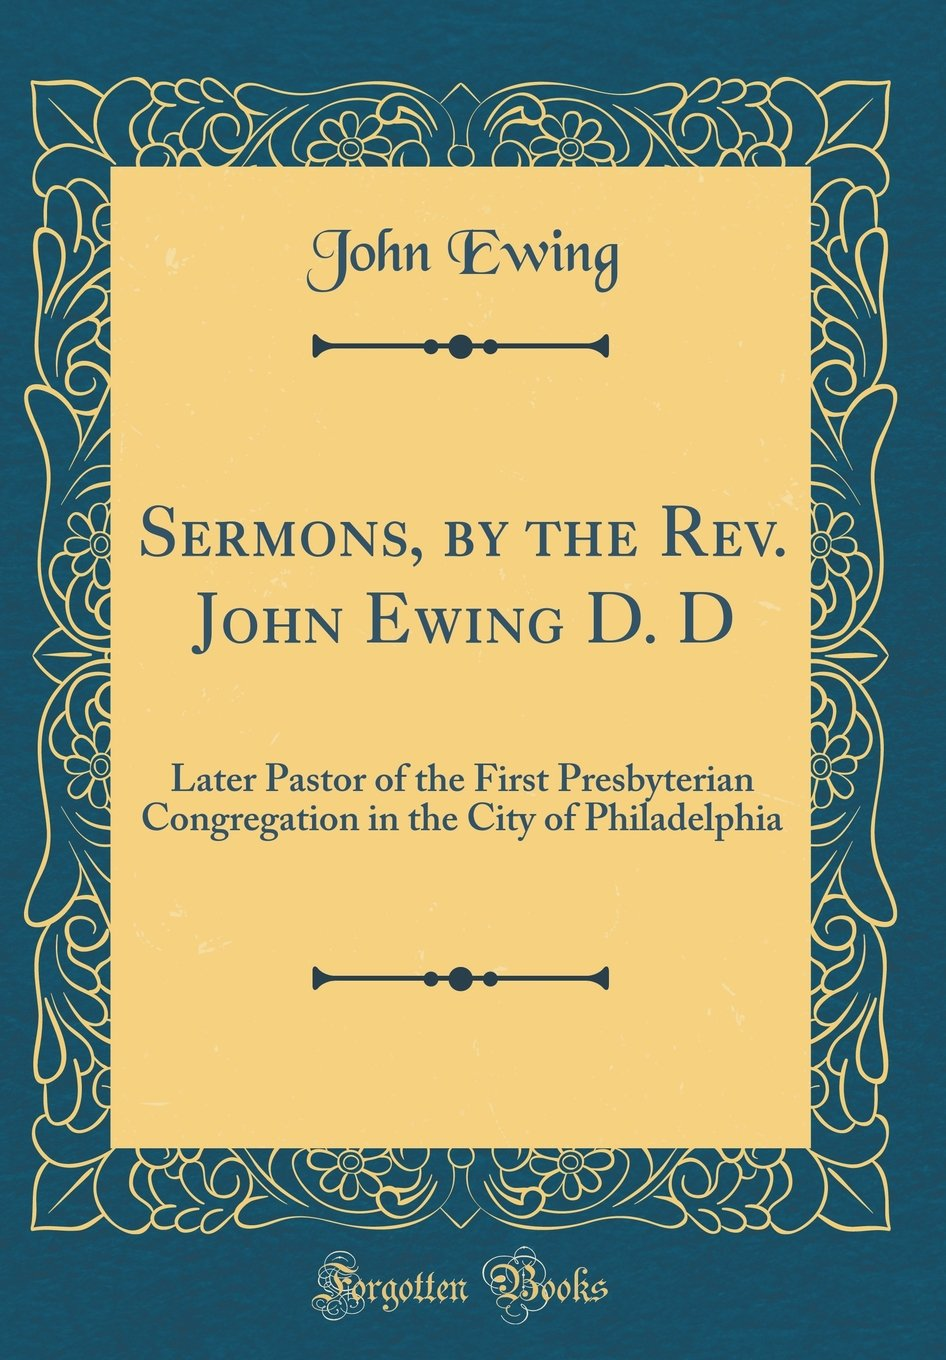 Sermons, by the Rev. John Ewing D. D: Later Pastor of the First Presbyterian Congregation in the City of Philadelphia (Classic Reprint) pdf epub